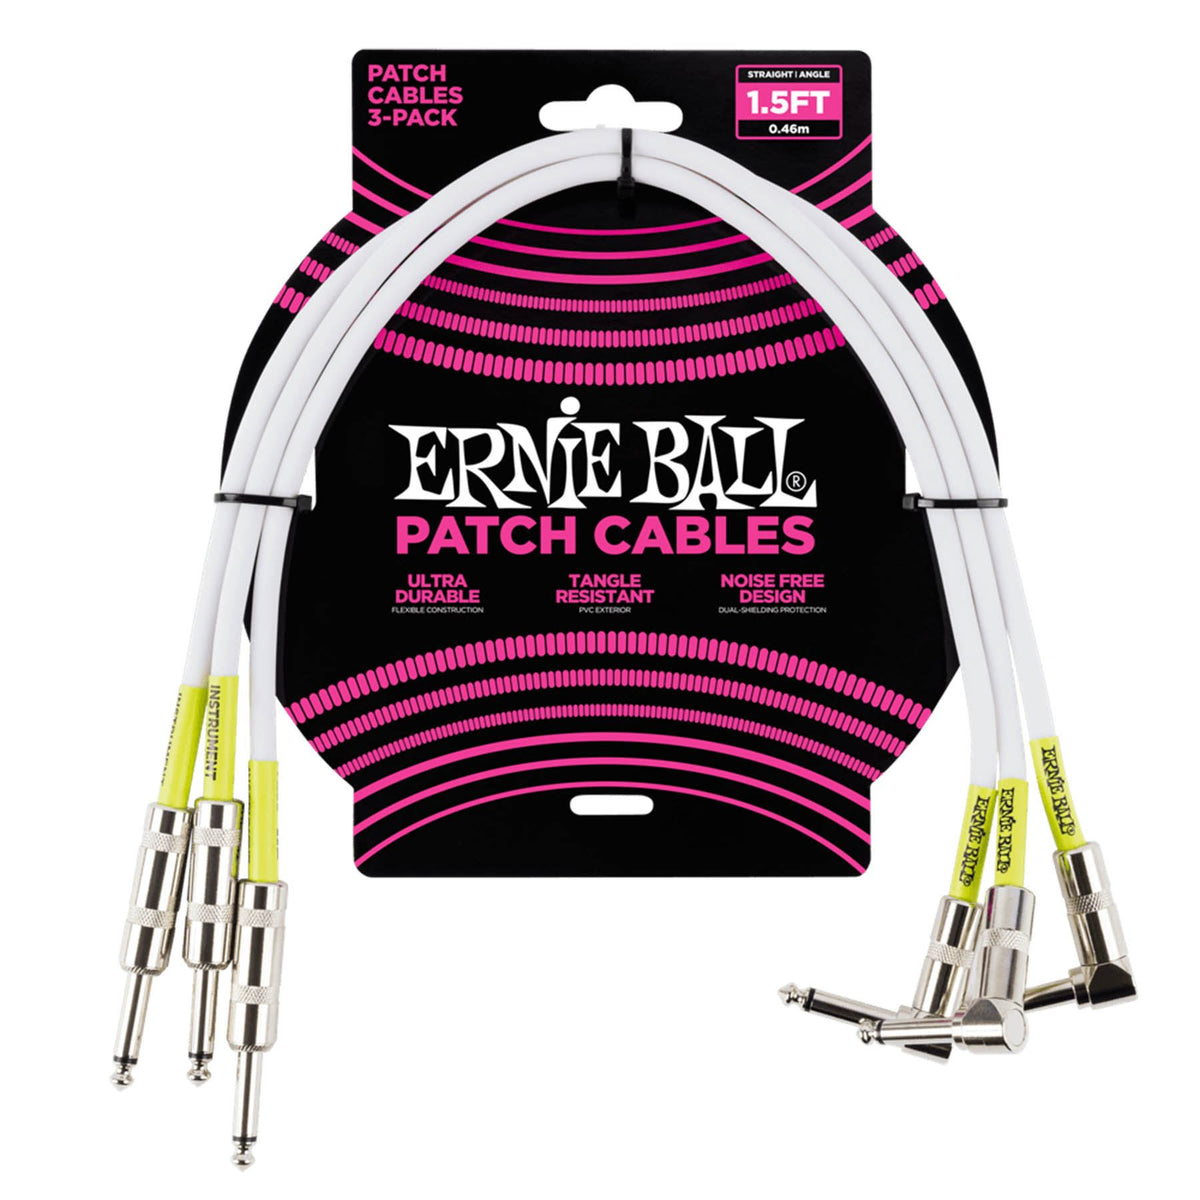 "Ernie Ball P06056 1.5-Foot White 1/4"" Straight/Angle Patch Cable - 3-Pack"